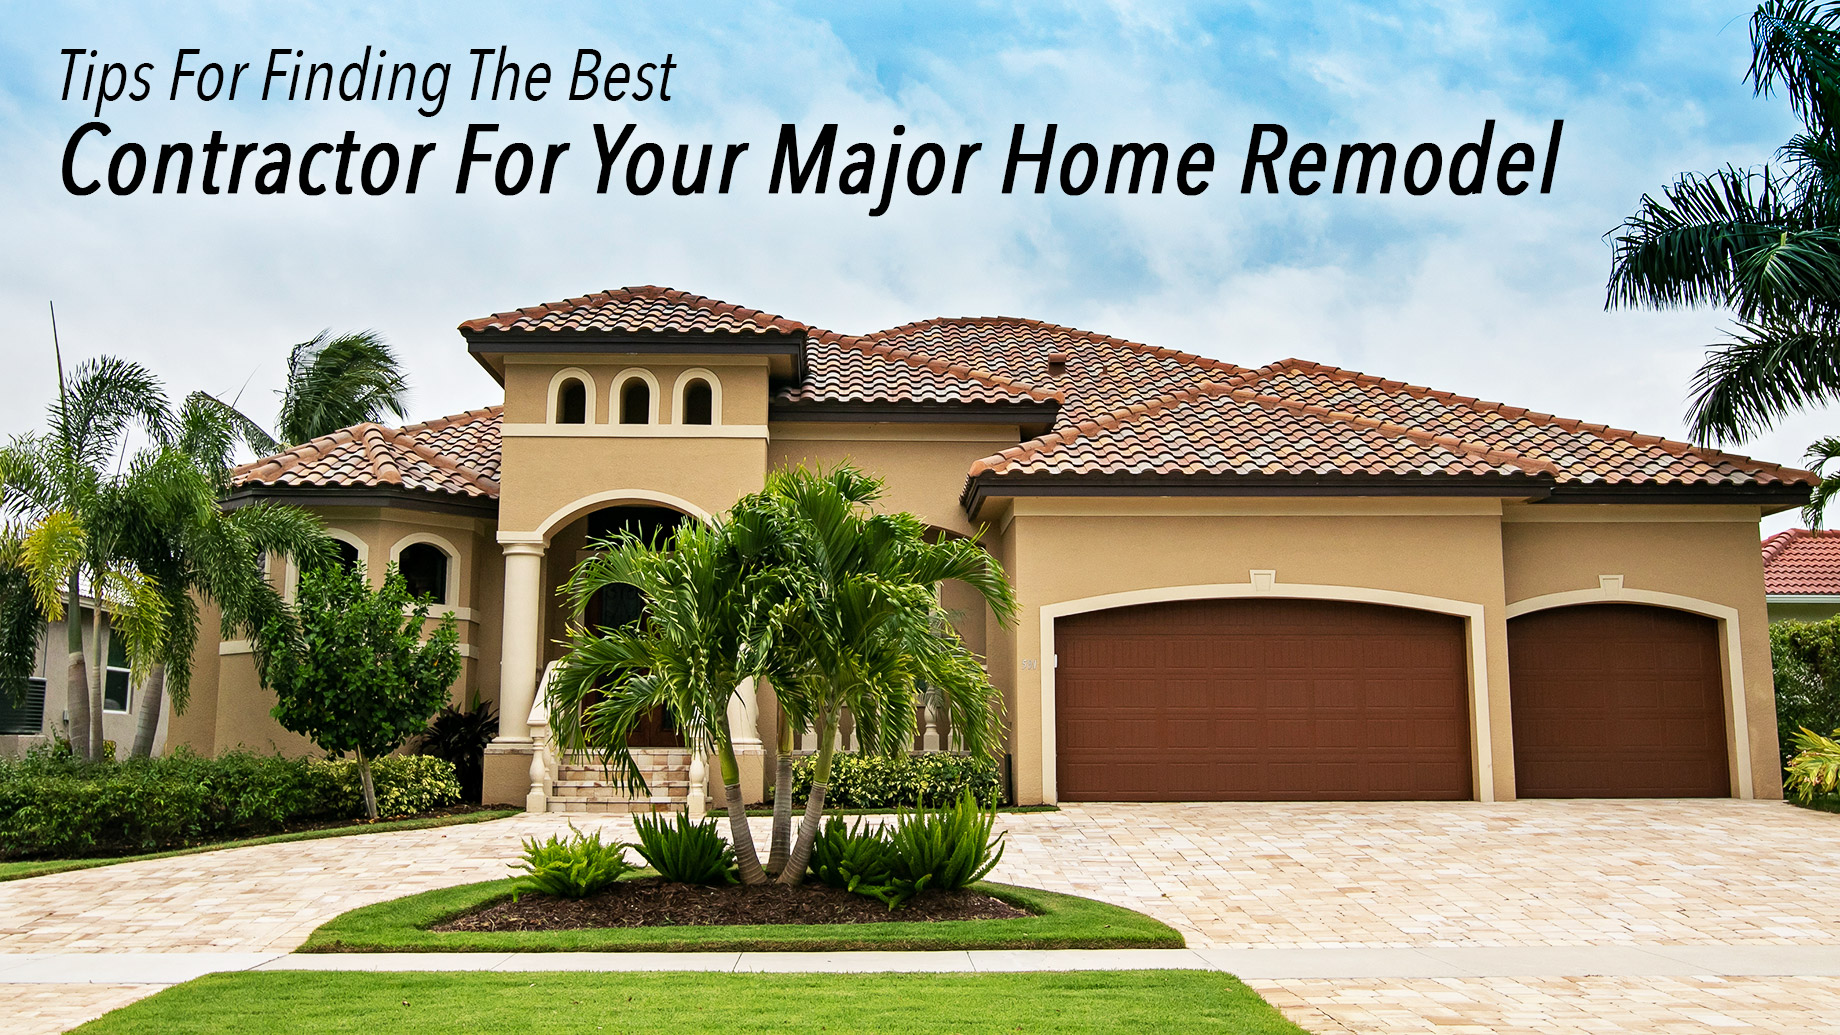 Tips For Finding The Best Contractor For Your Major Home Remodel